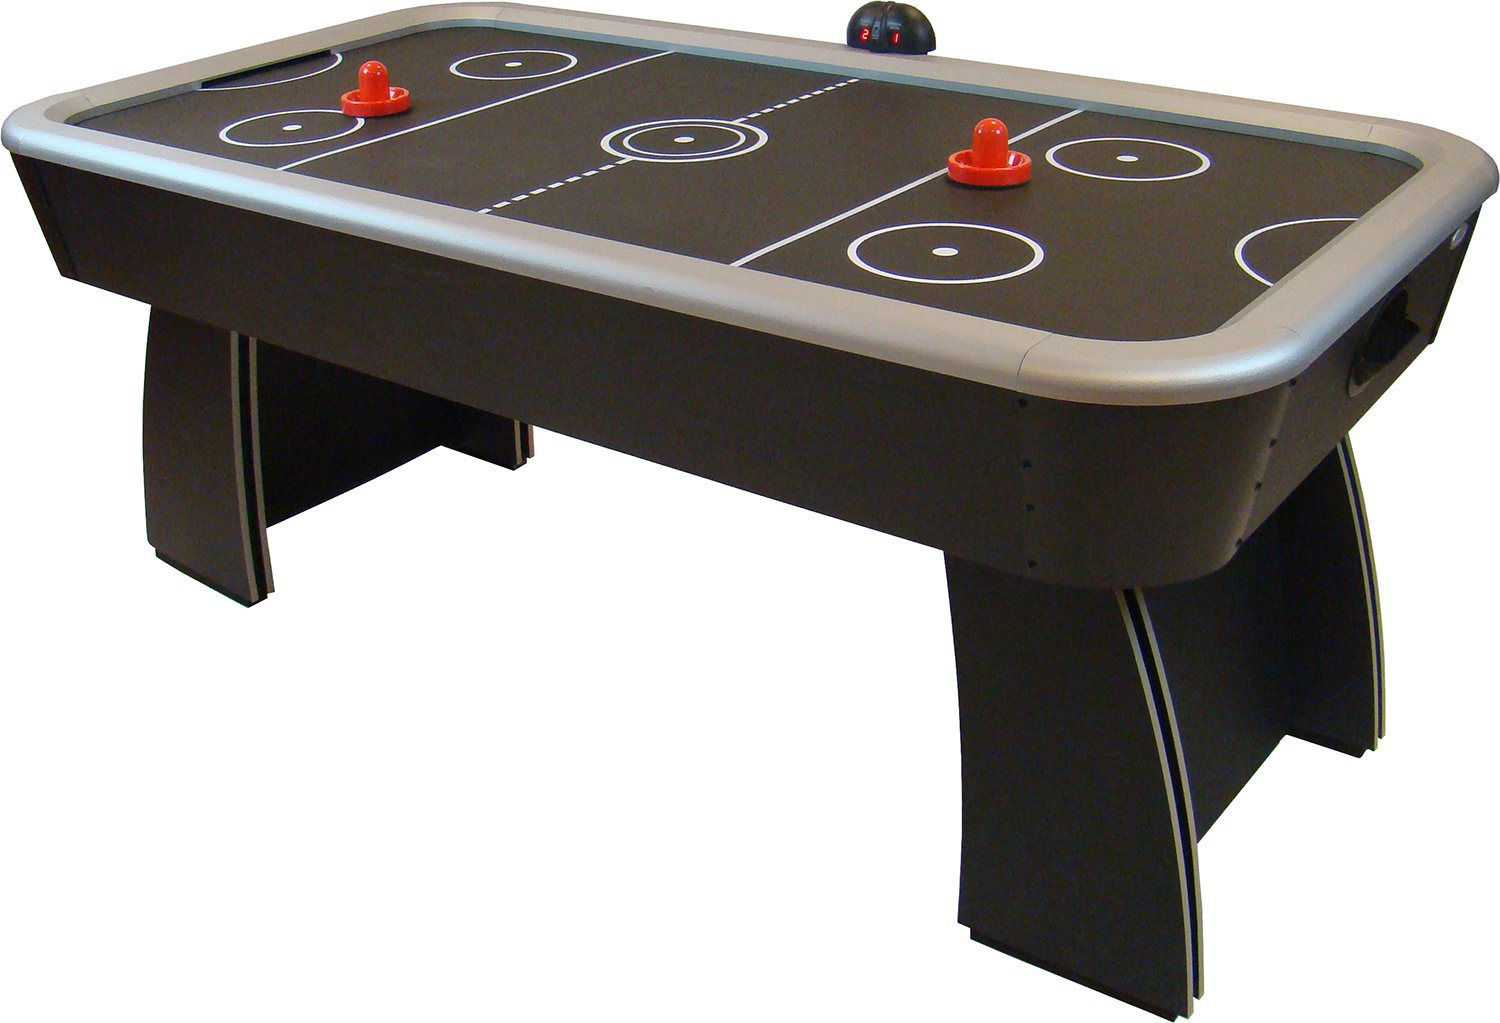 Harvard air hockey table thousands pictures of home furnishing 3cb3etable3c2fb3e7cthompsonsportinggoodsu0026pharvardair hockey tableu0026oid56aec4705ffa399d54082ba1723bbf00u0026fr2u0026fru0026tt wires greentooth Image collections